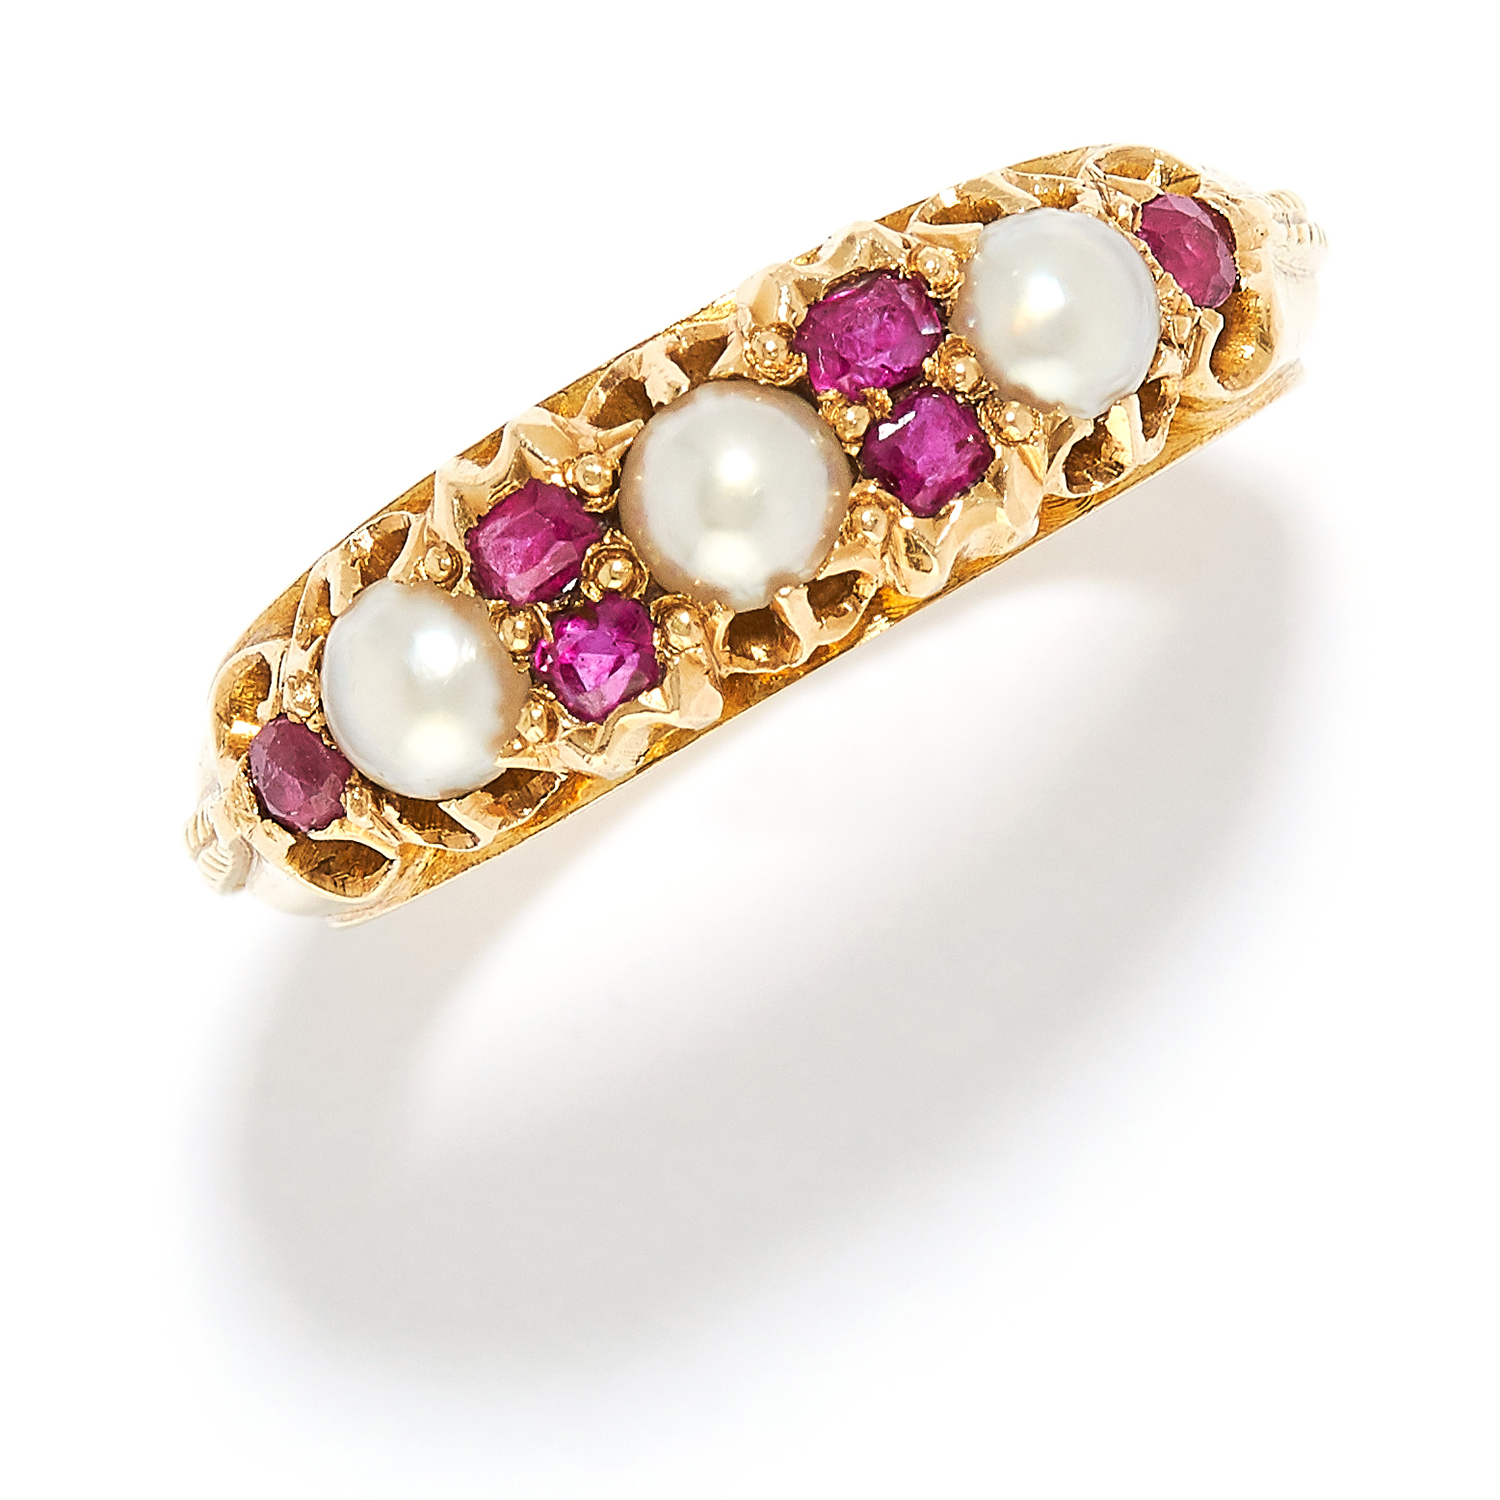 ANTIQUE PEARL AND RUBY RING in 15ct yellow gold, set with alternating seed pearls and cushion cut